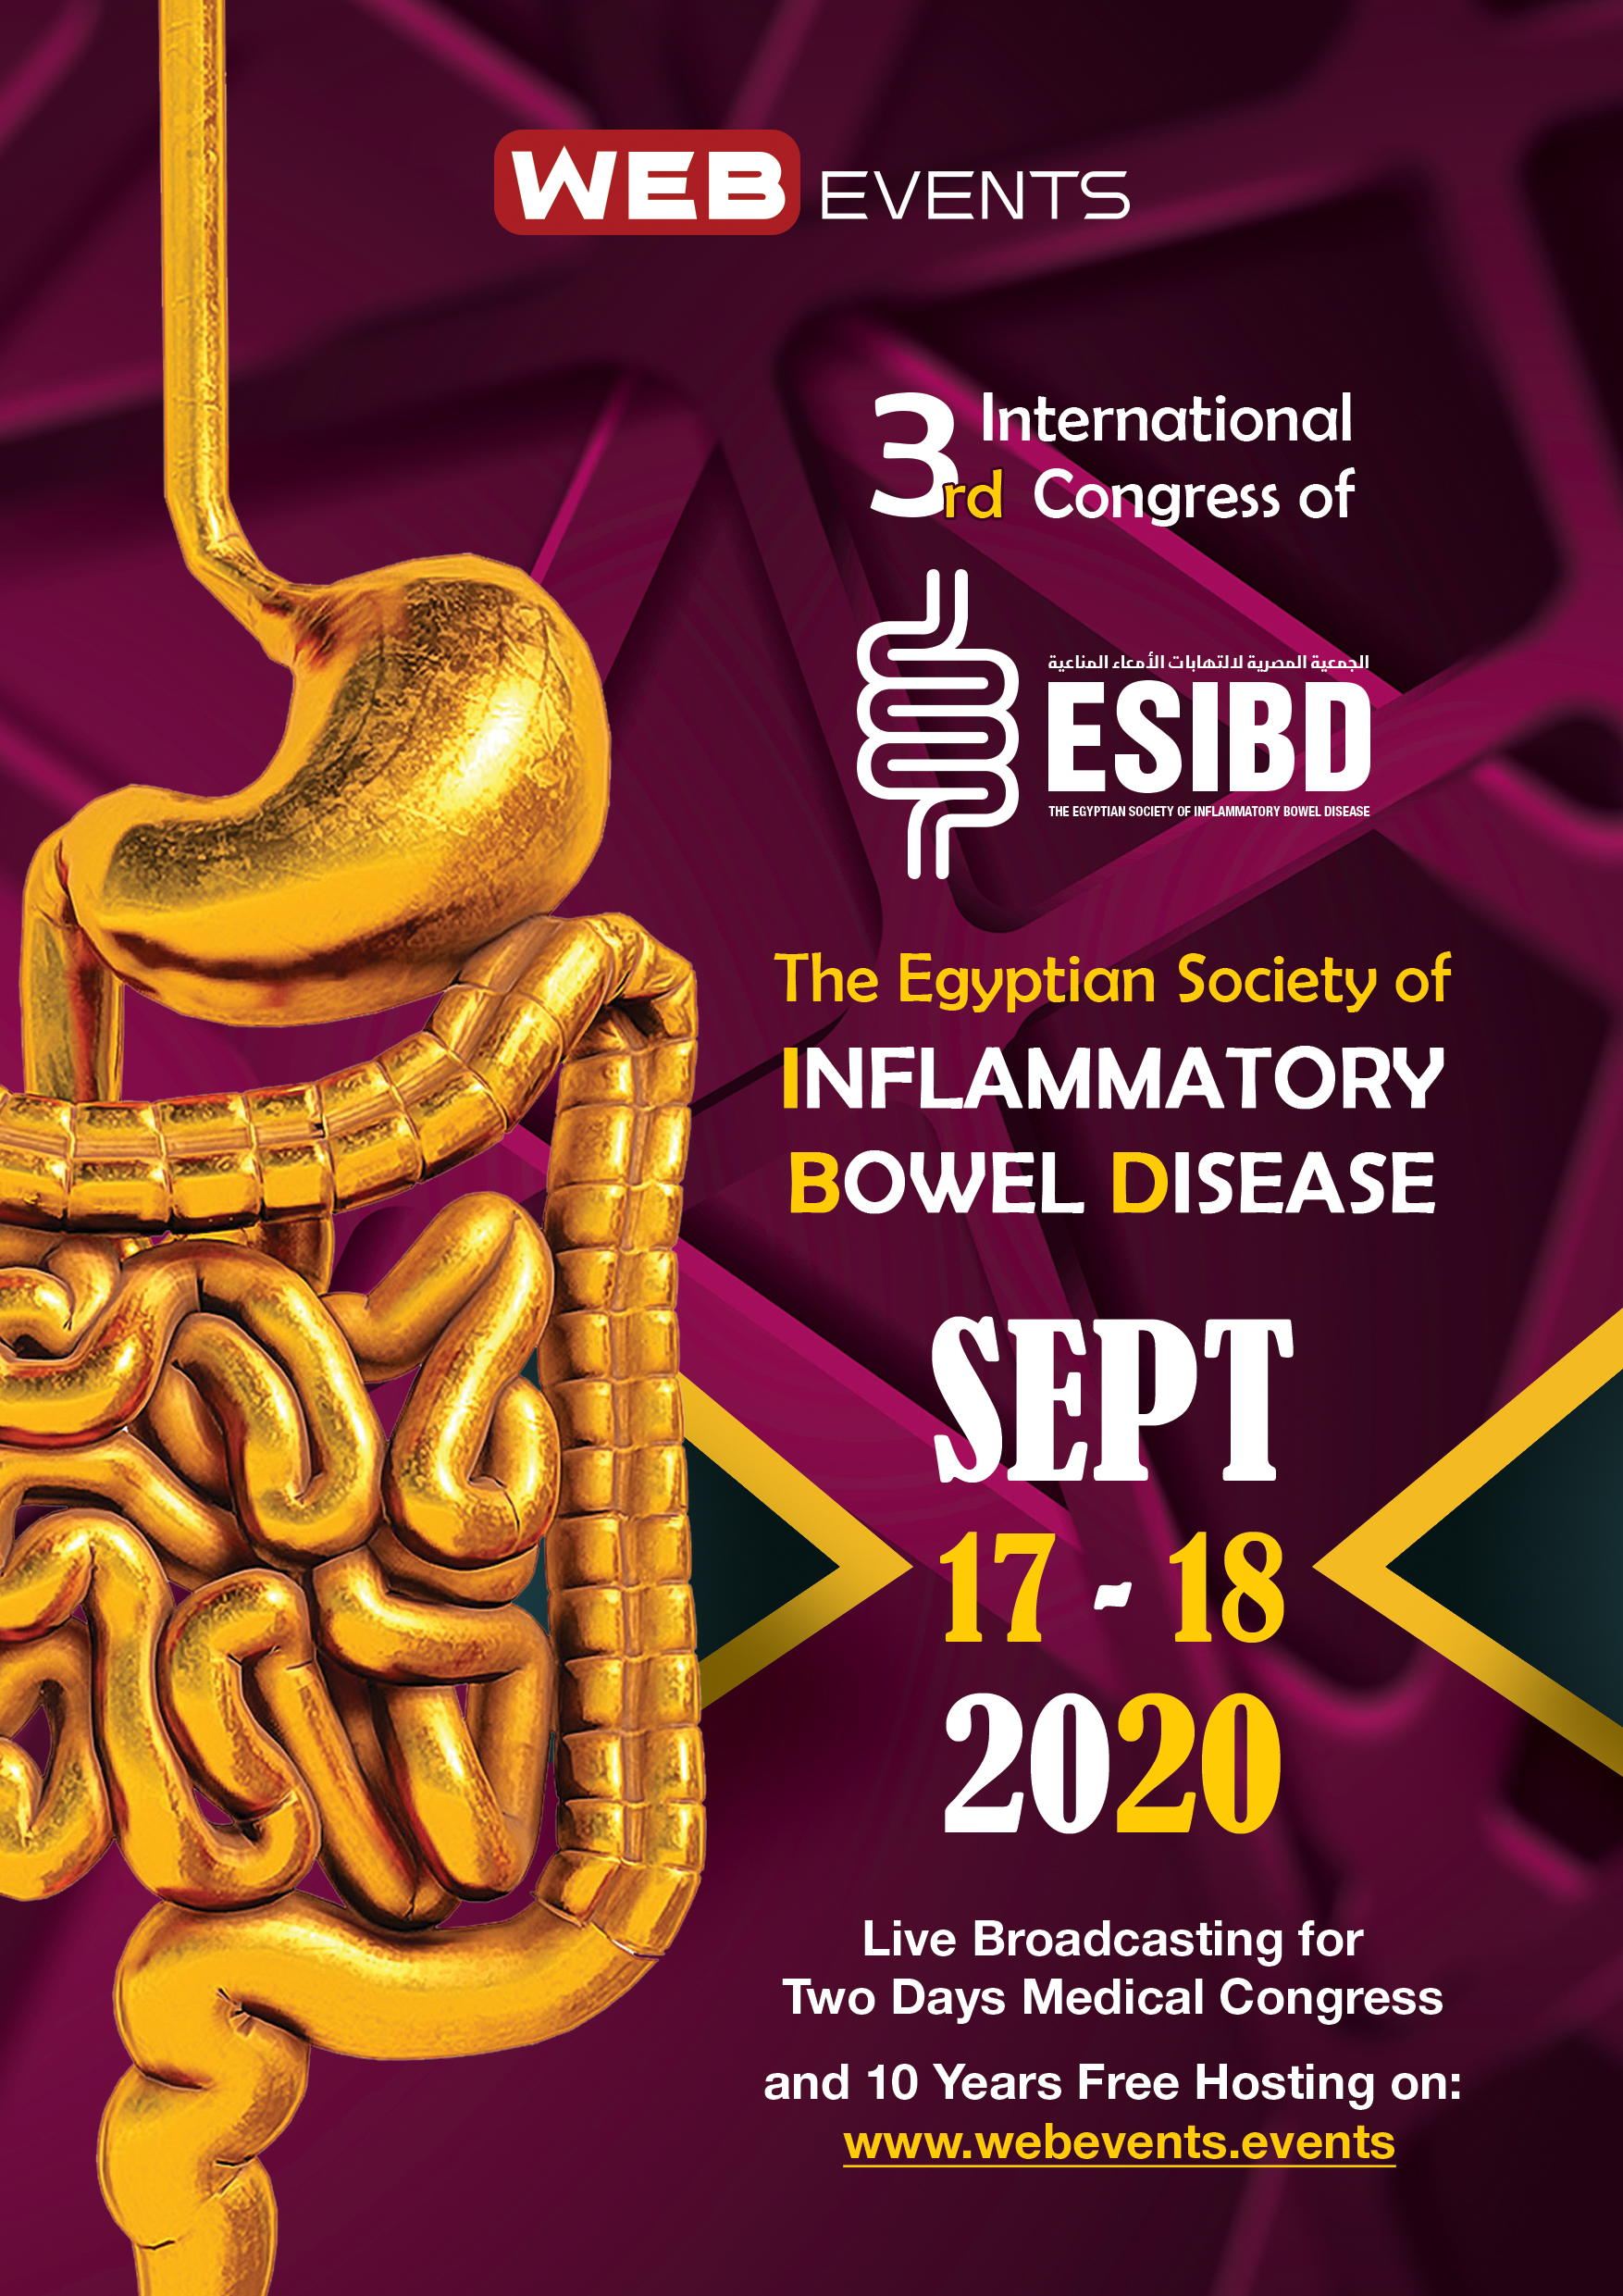 3rd Congress of ESIBD